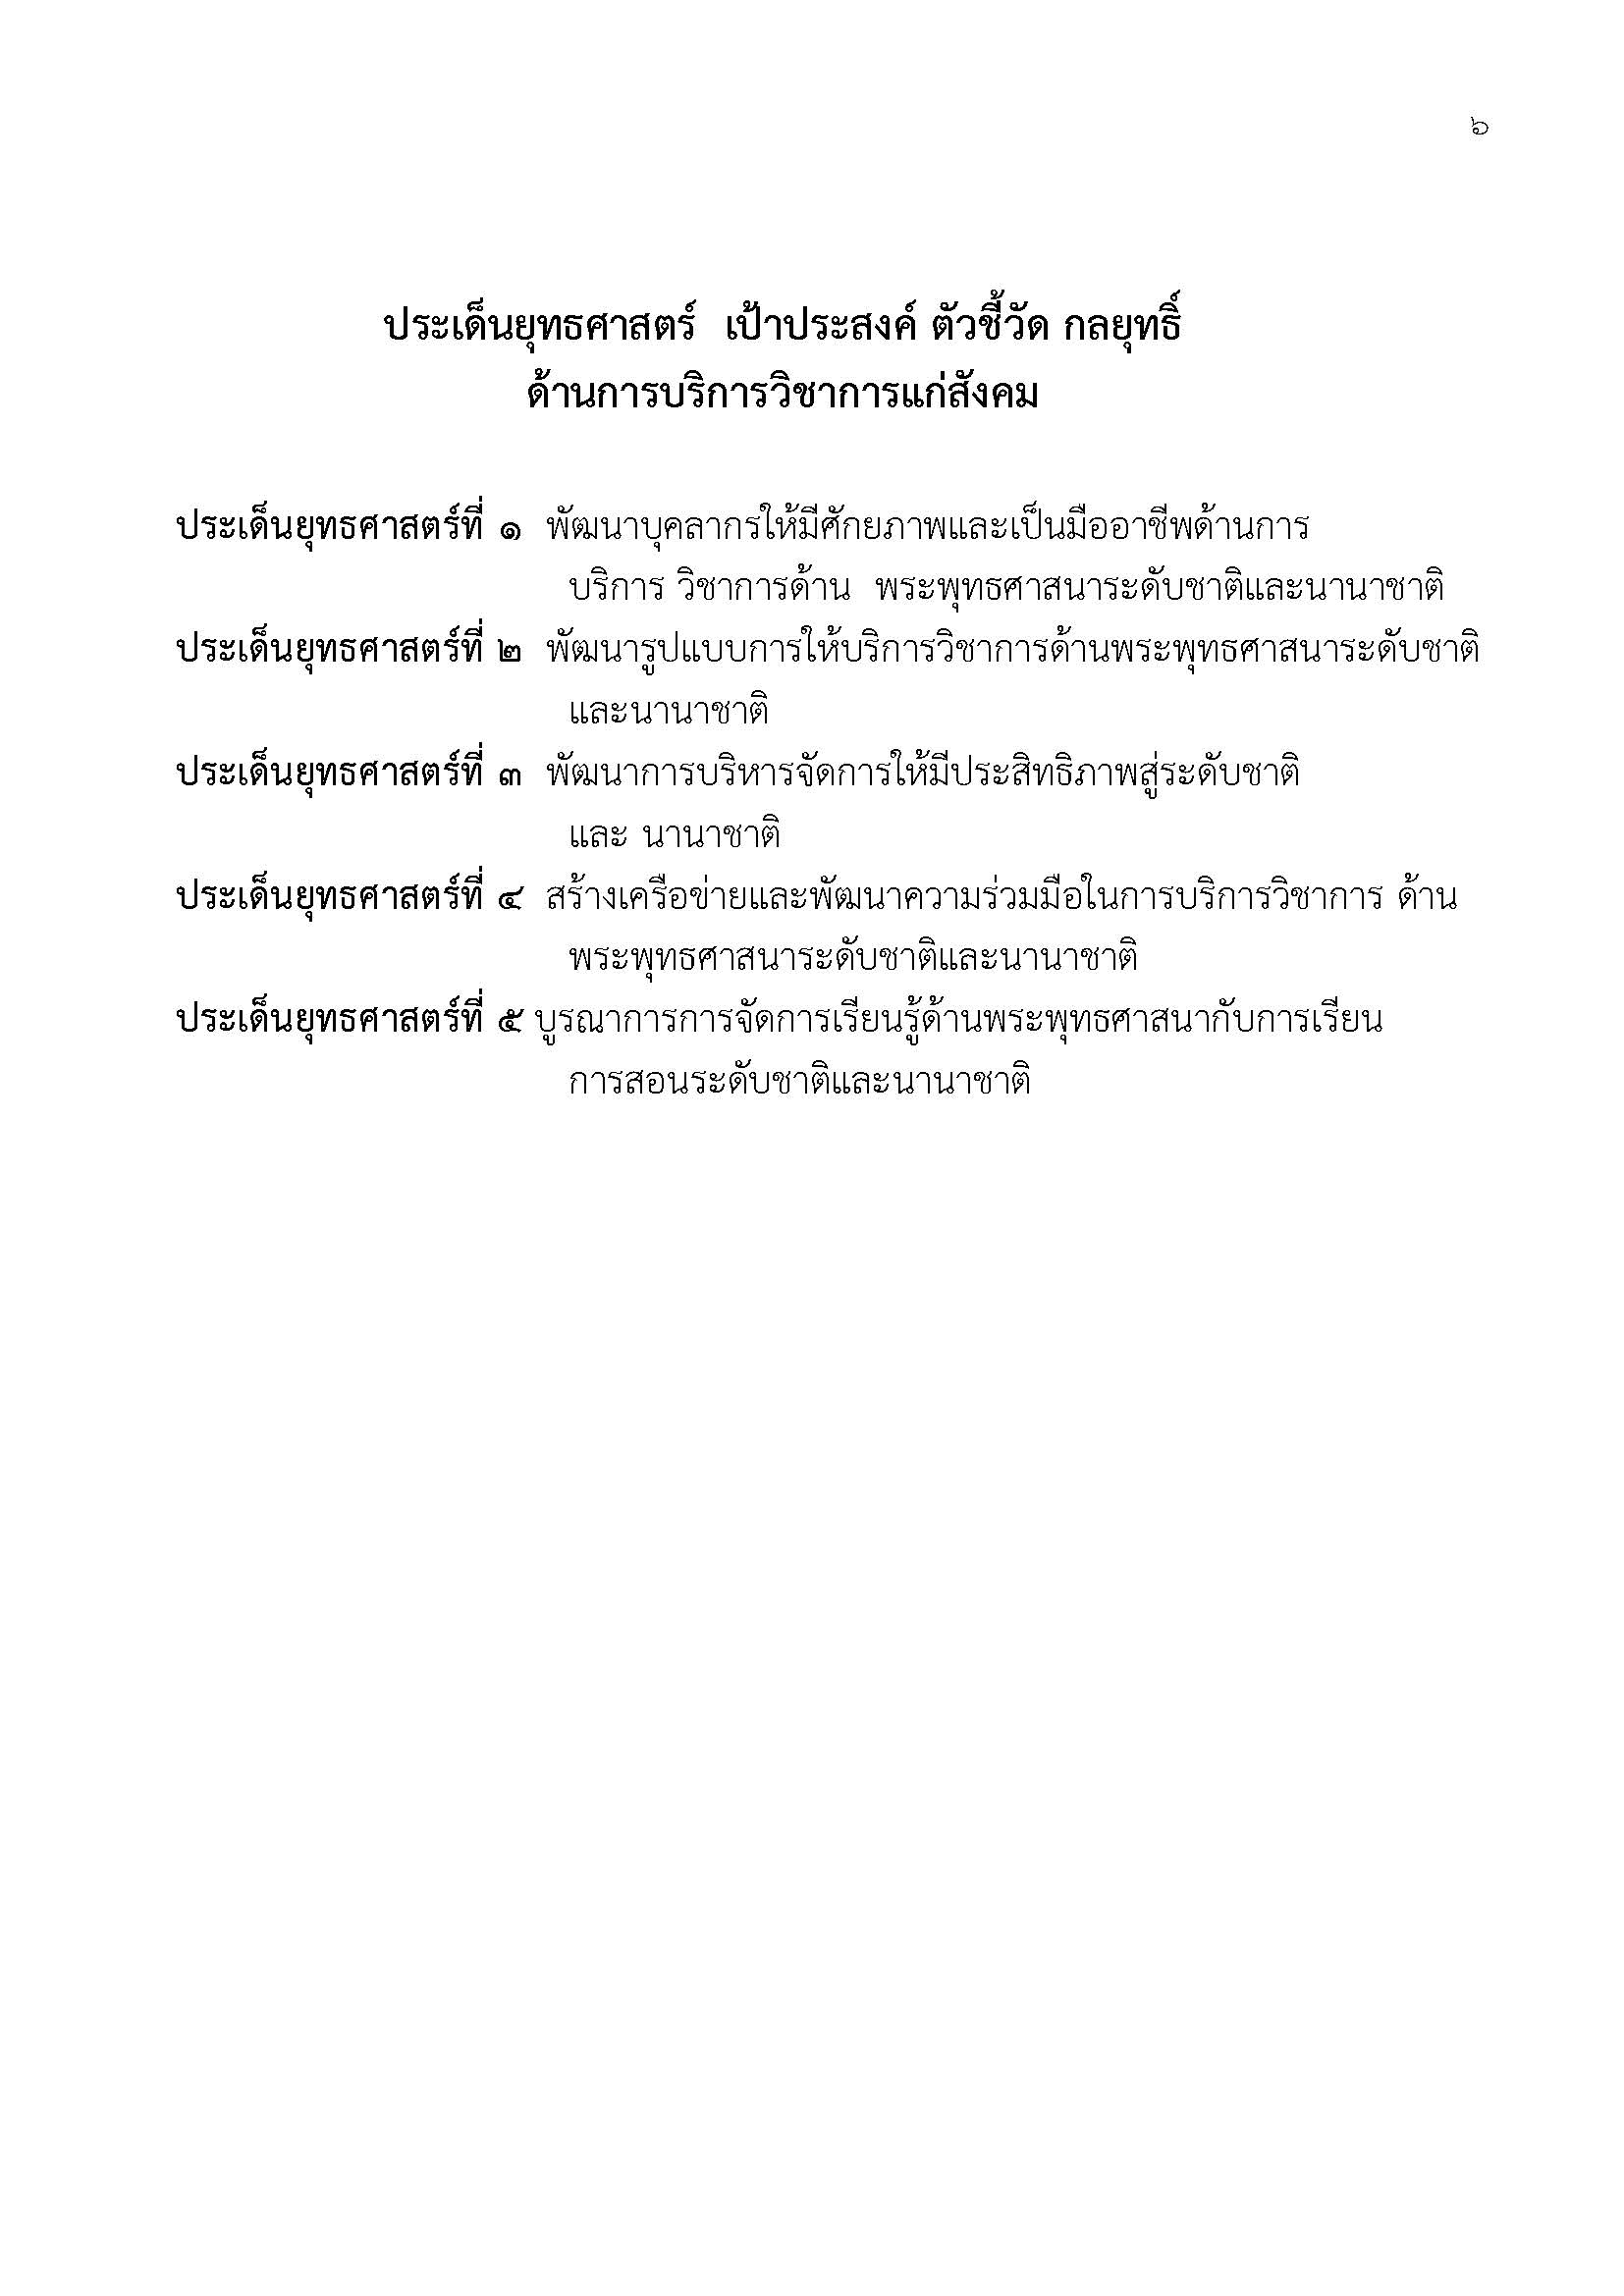 QC_Page_06